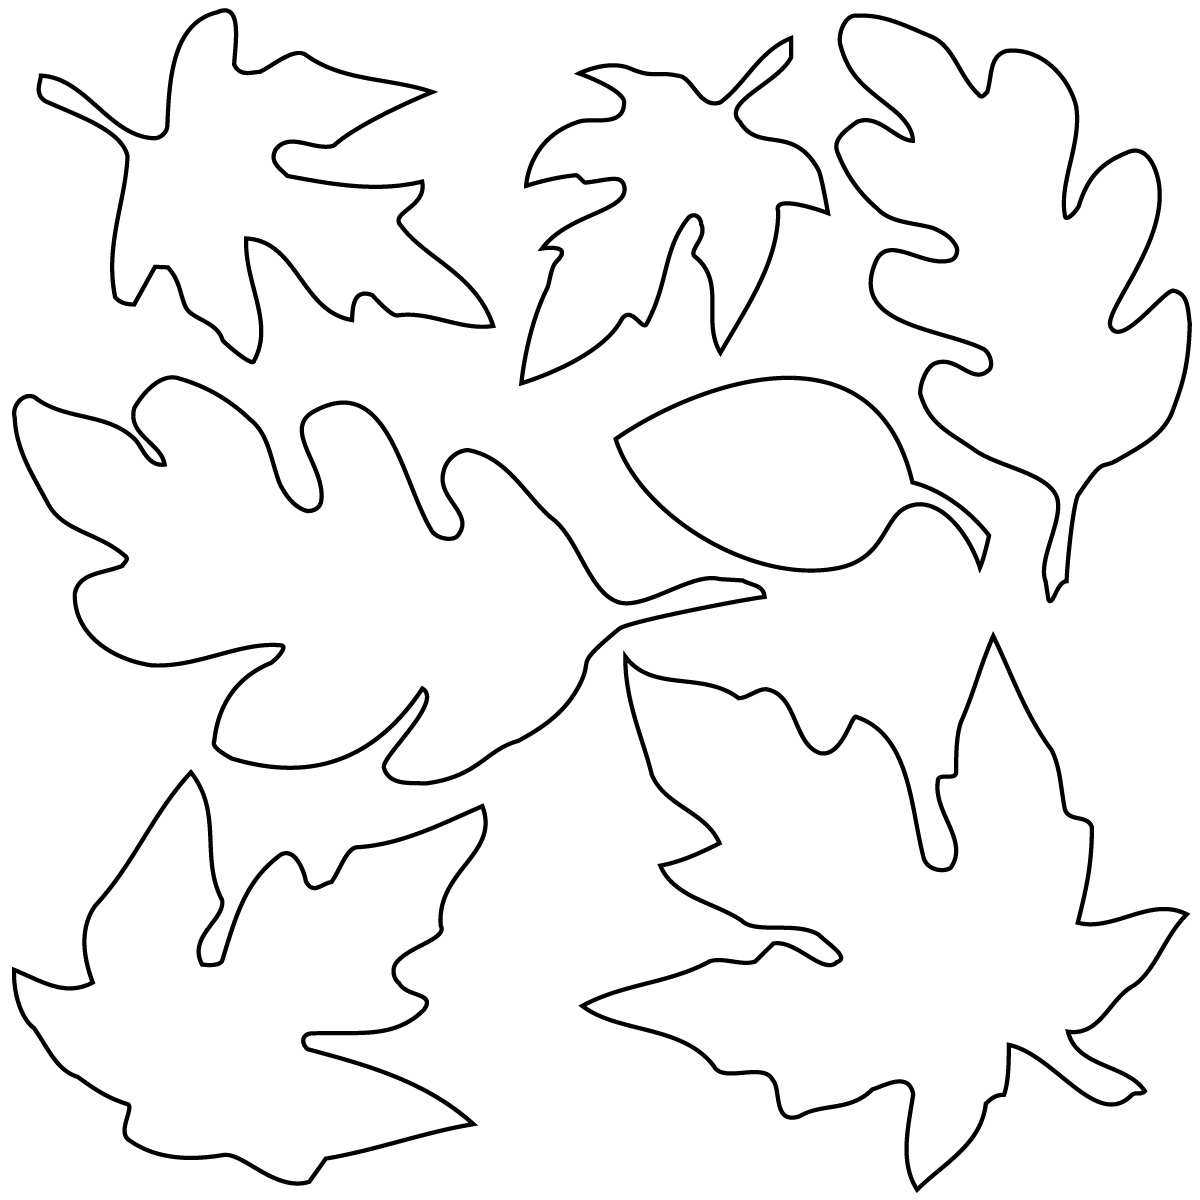 Free Oak Leaf Graphic, Download Free Clip Art, Free Clip Art On - Free Printable Oak Leaf Patterns